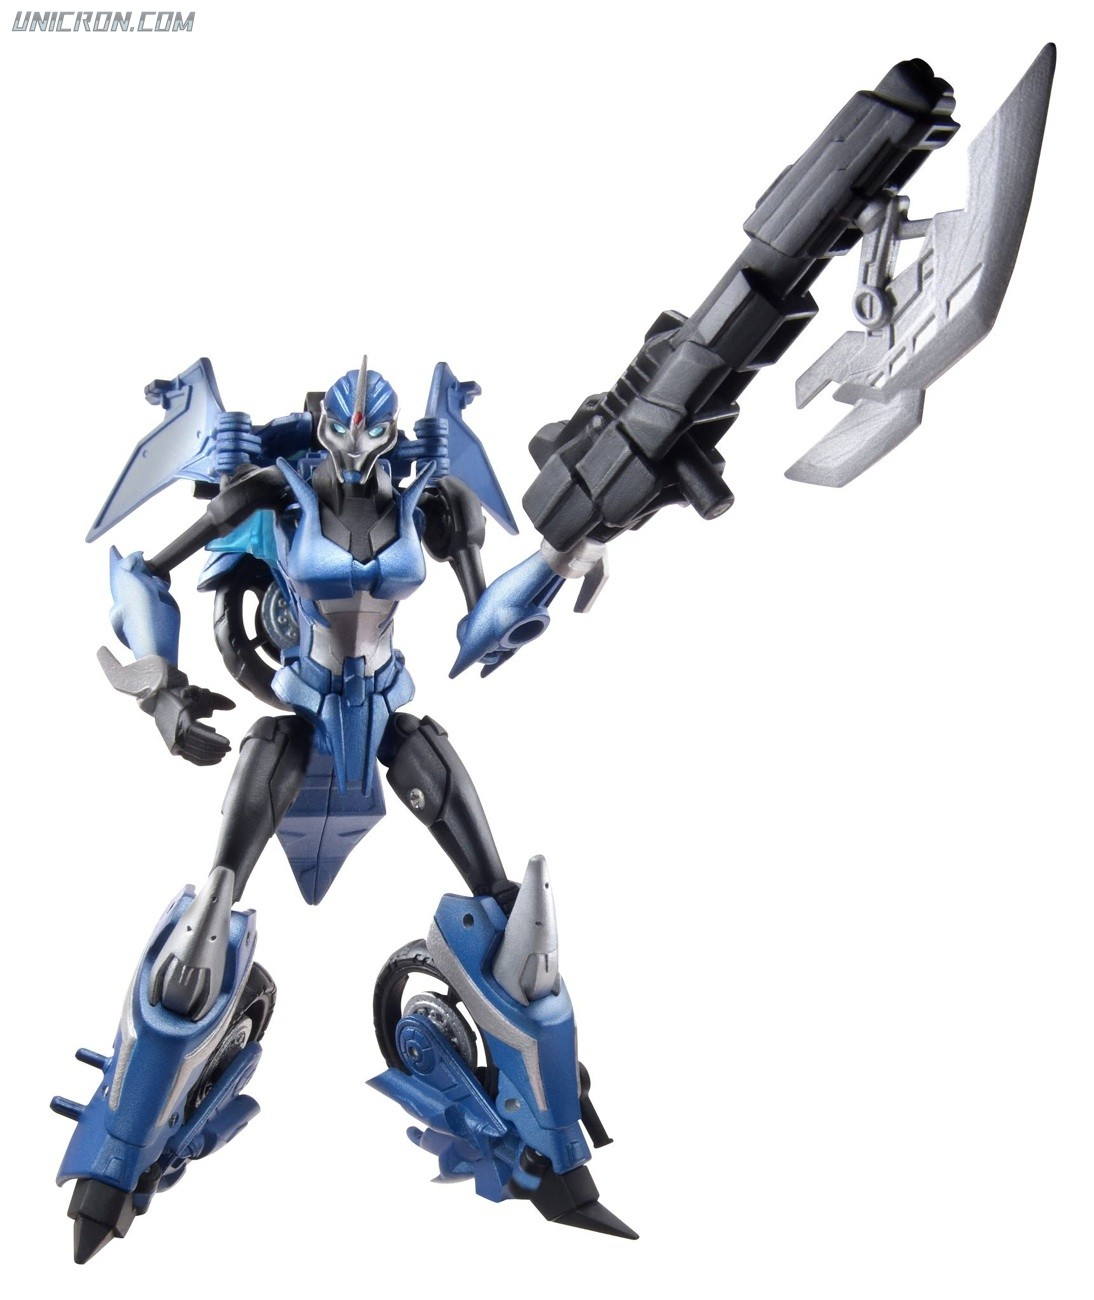 Transformers Prime Arcee toy